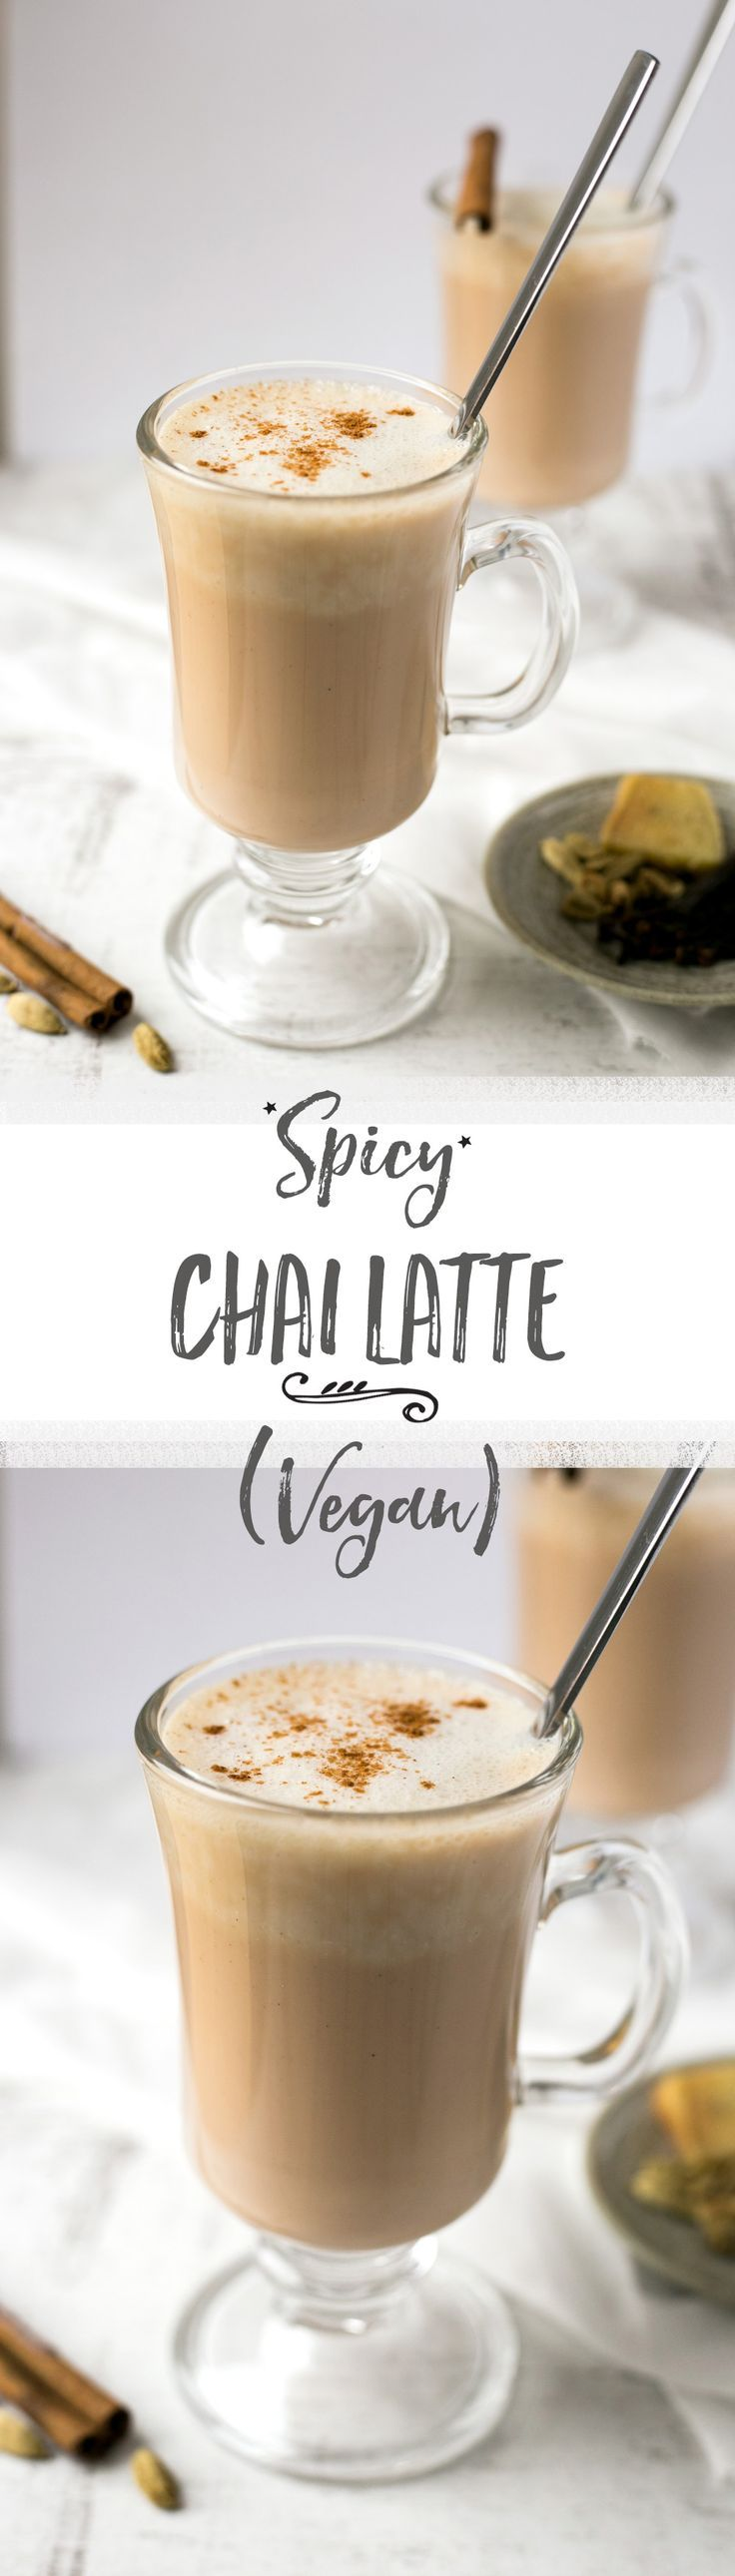 Smooth, delicious, spicy chai latte made with cashew milk and traditional spices. | via @annabanana.co